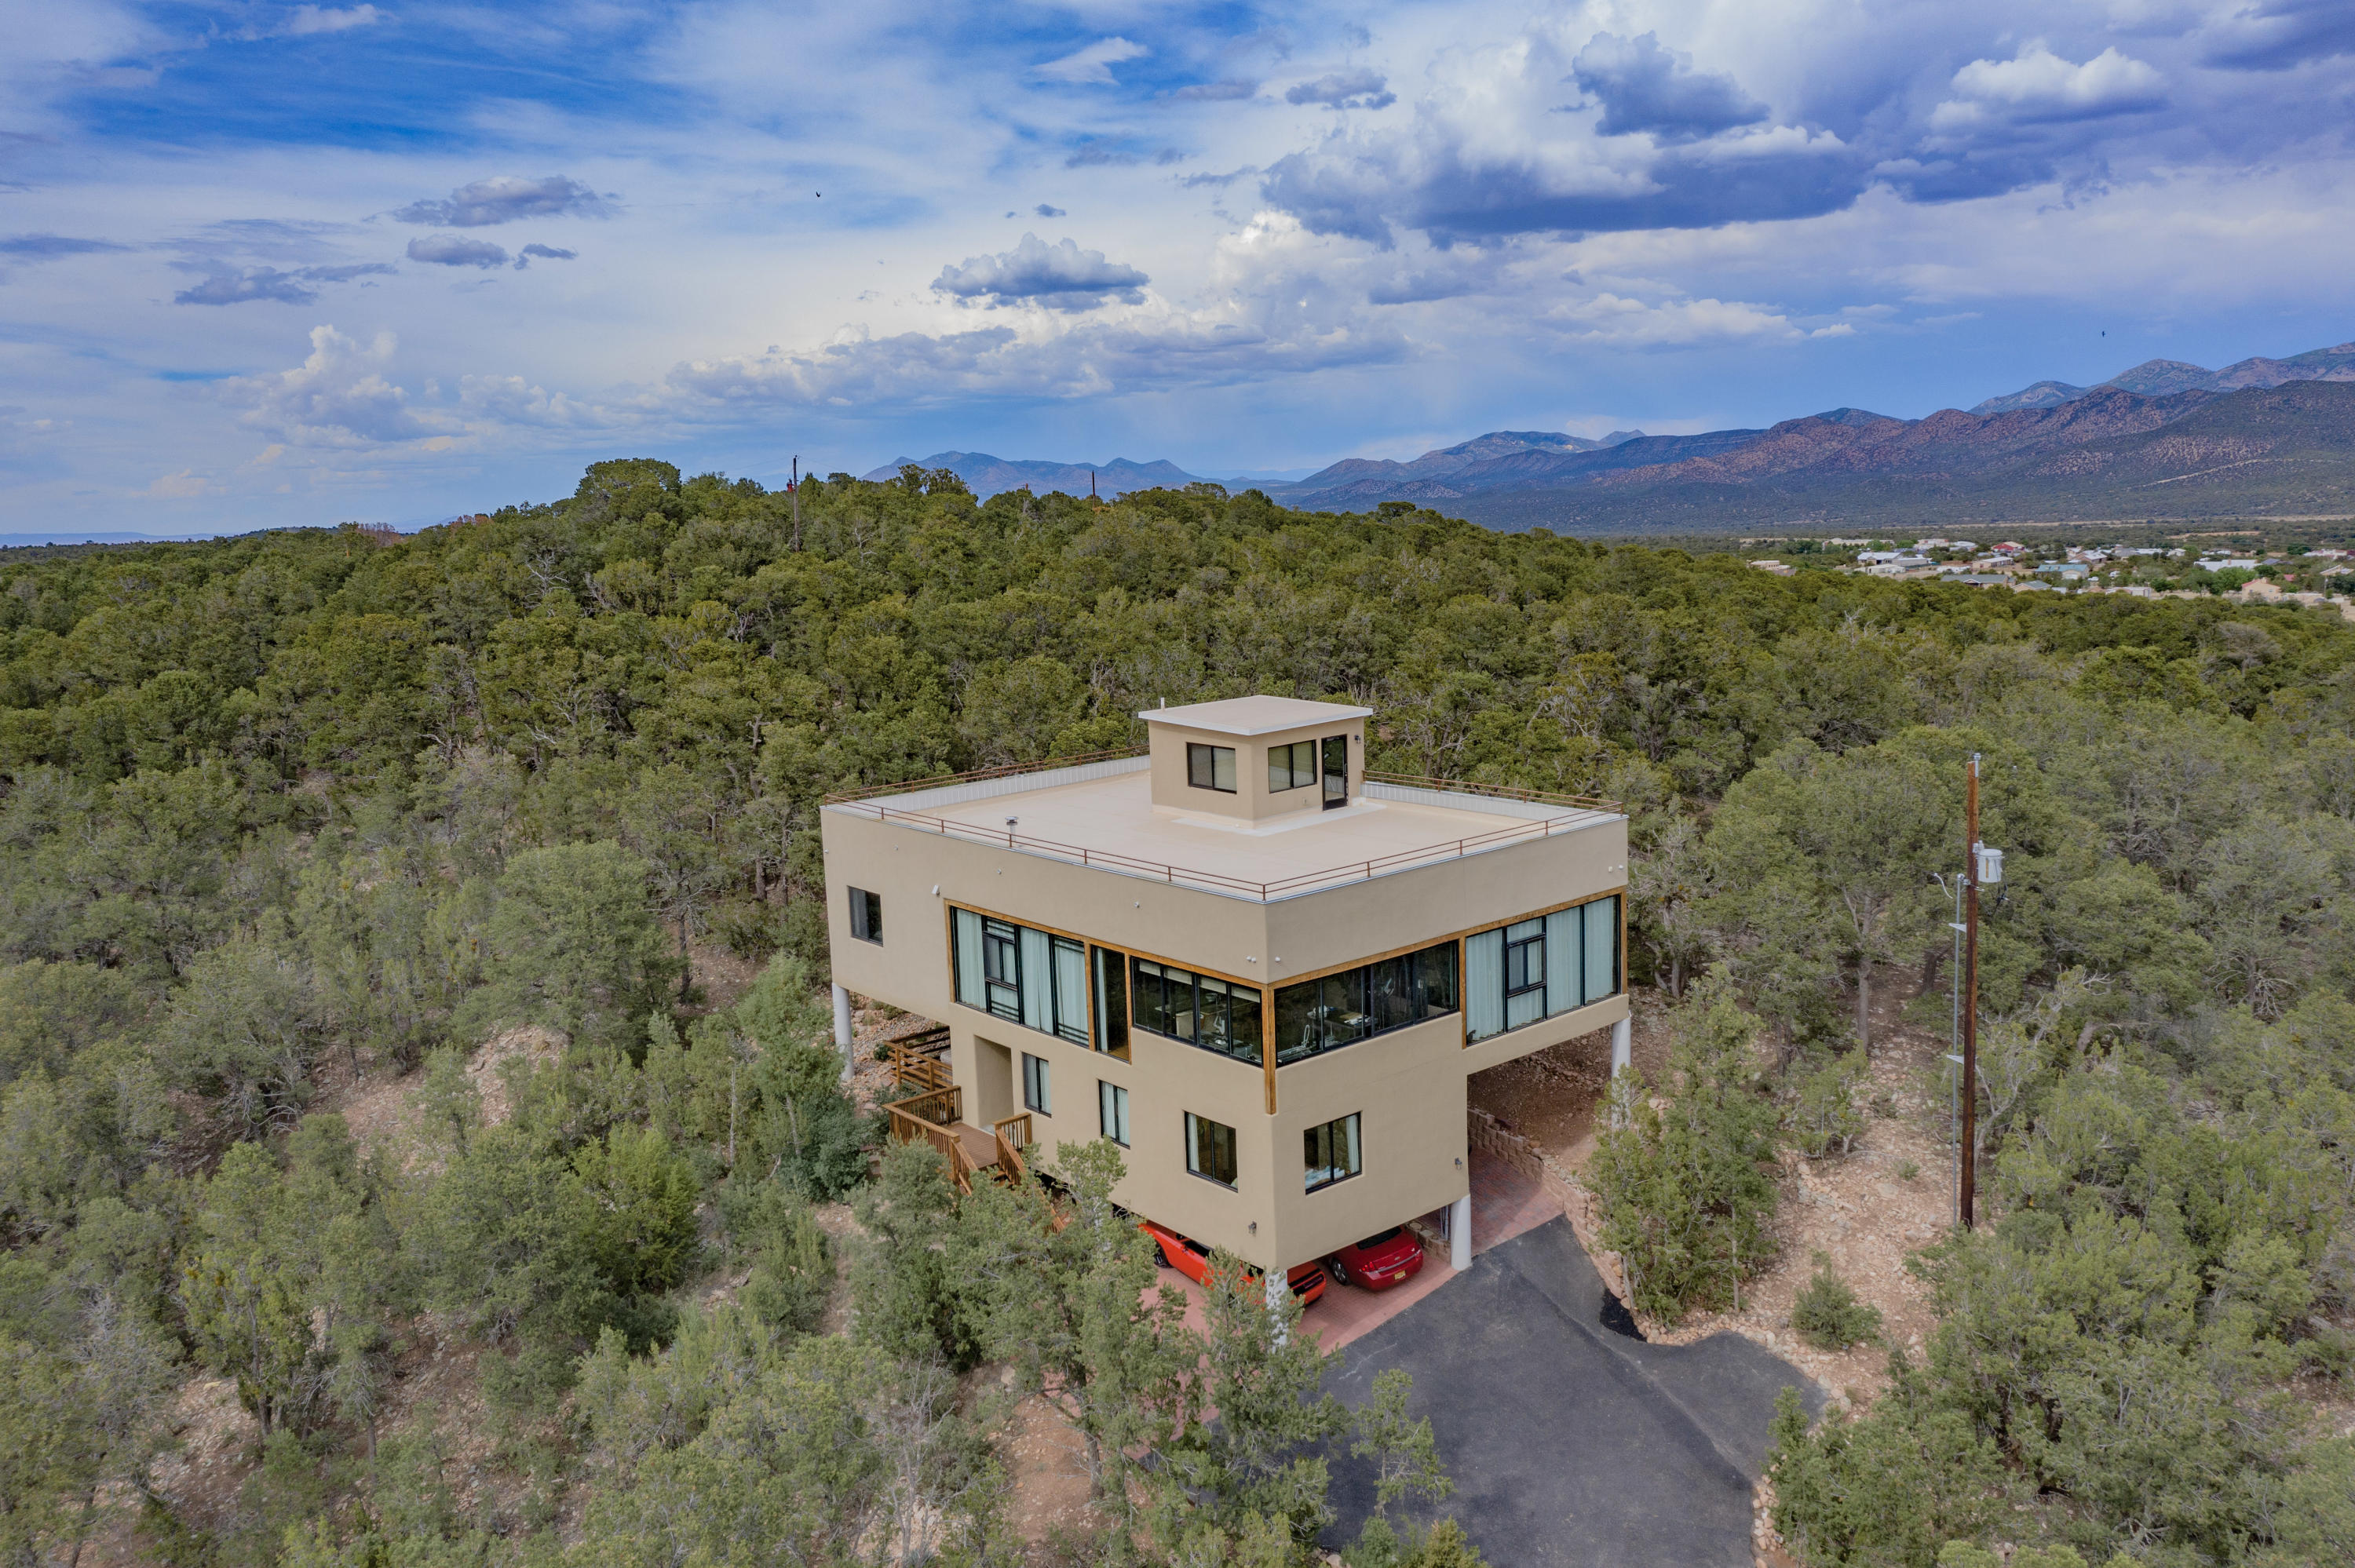 Custom 3 story luxury home on 1 acre in Sandia Park. Hardwood floors and tile throughout. 3 exterior decks, hot tub and sauna for those lovely mountain evenings. Plaster walls, enclosed outdoor kitchen with plenty of seating. Four bedrooms , each with their own bath. 3rd floor reading room/ office is a private sanctuary. Views? Views, Views, Views!